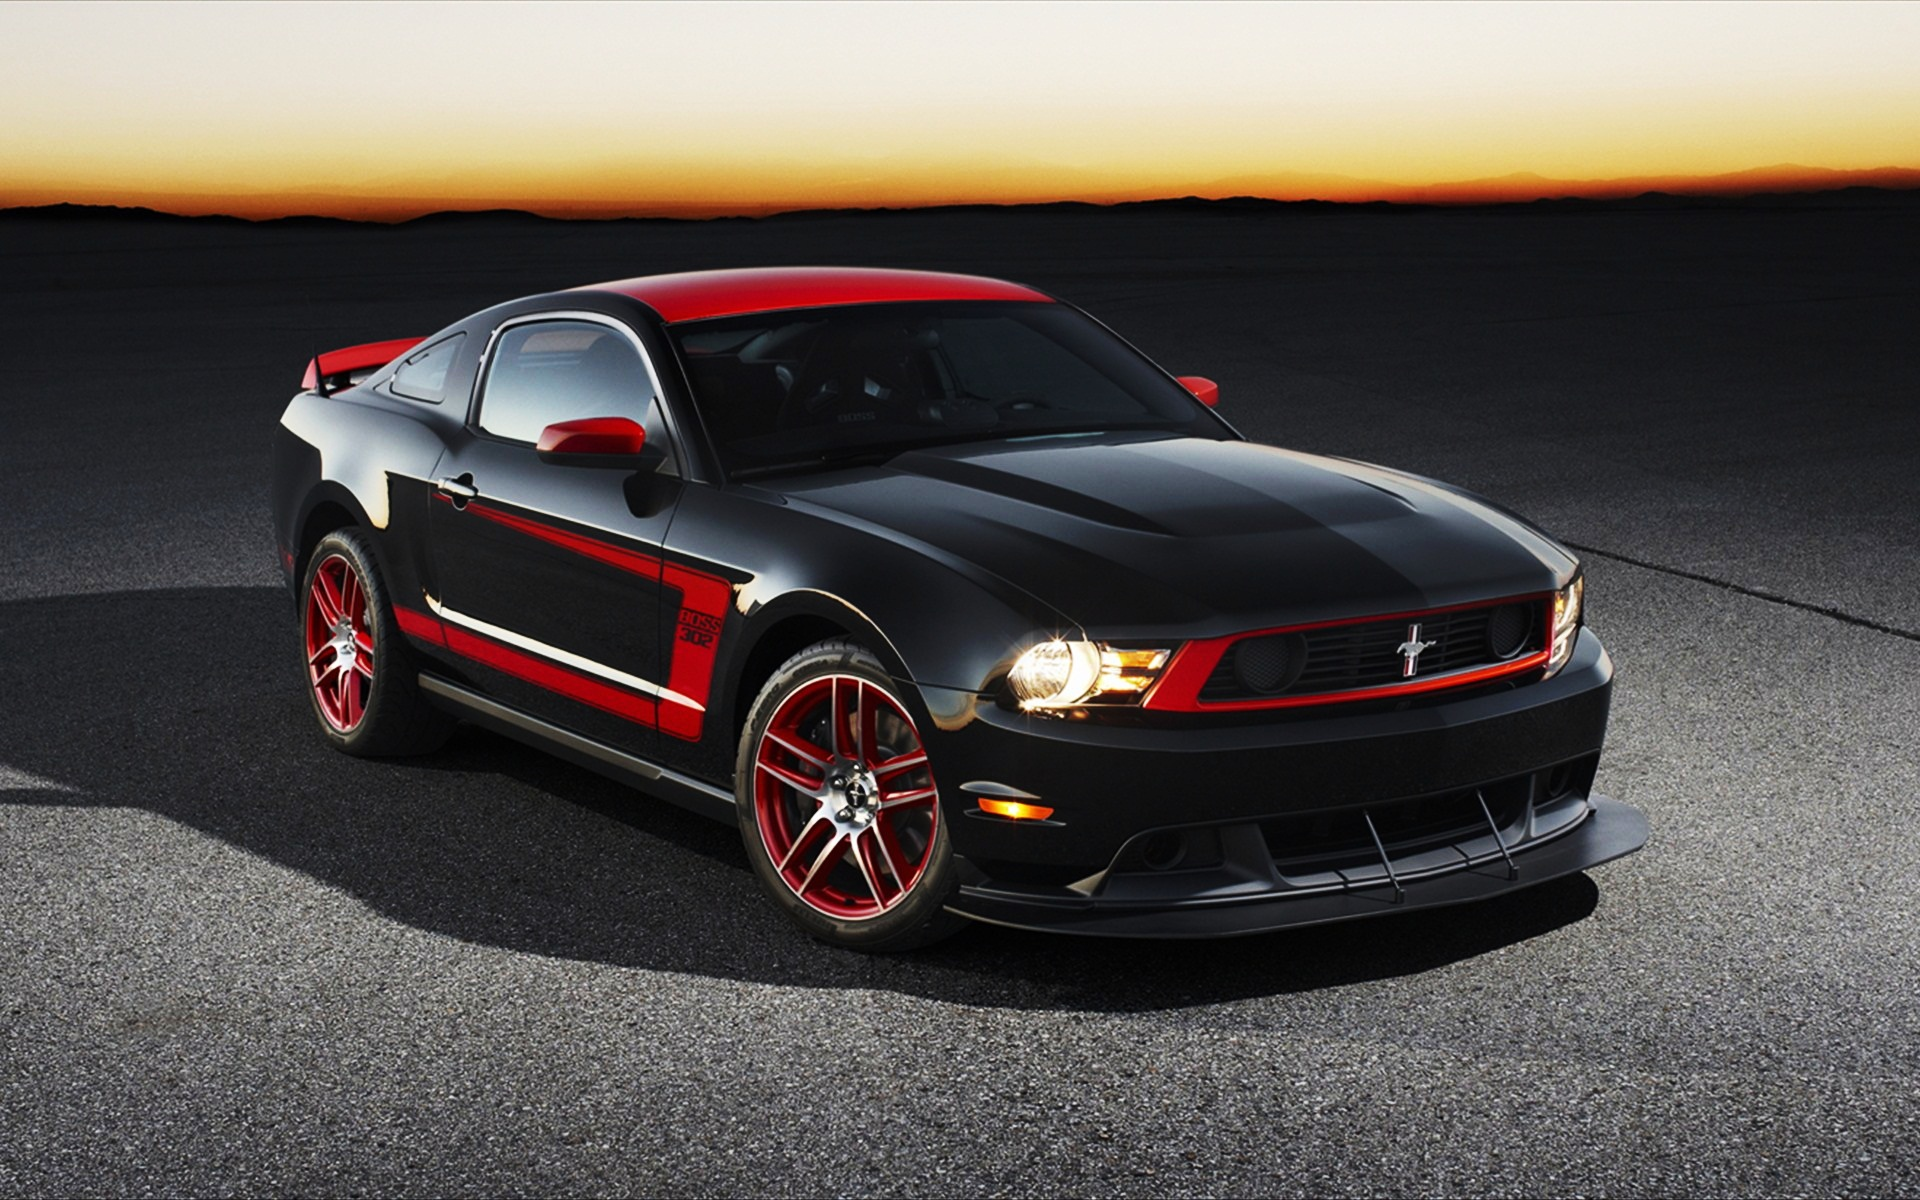 2012 Ford Mustang Boss Wallpapers HD Wallpapers 1920x1200